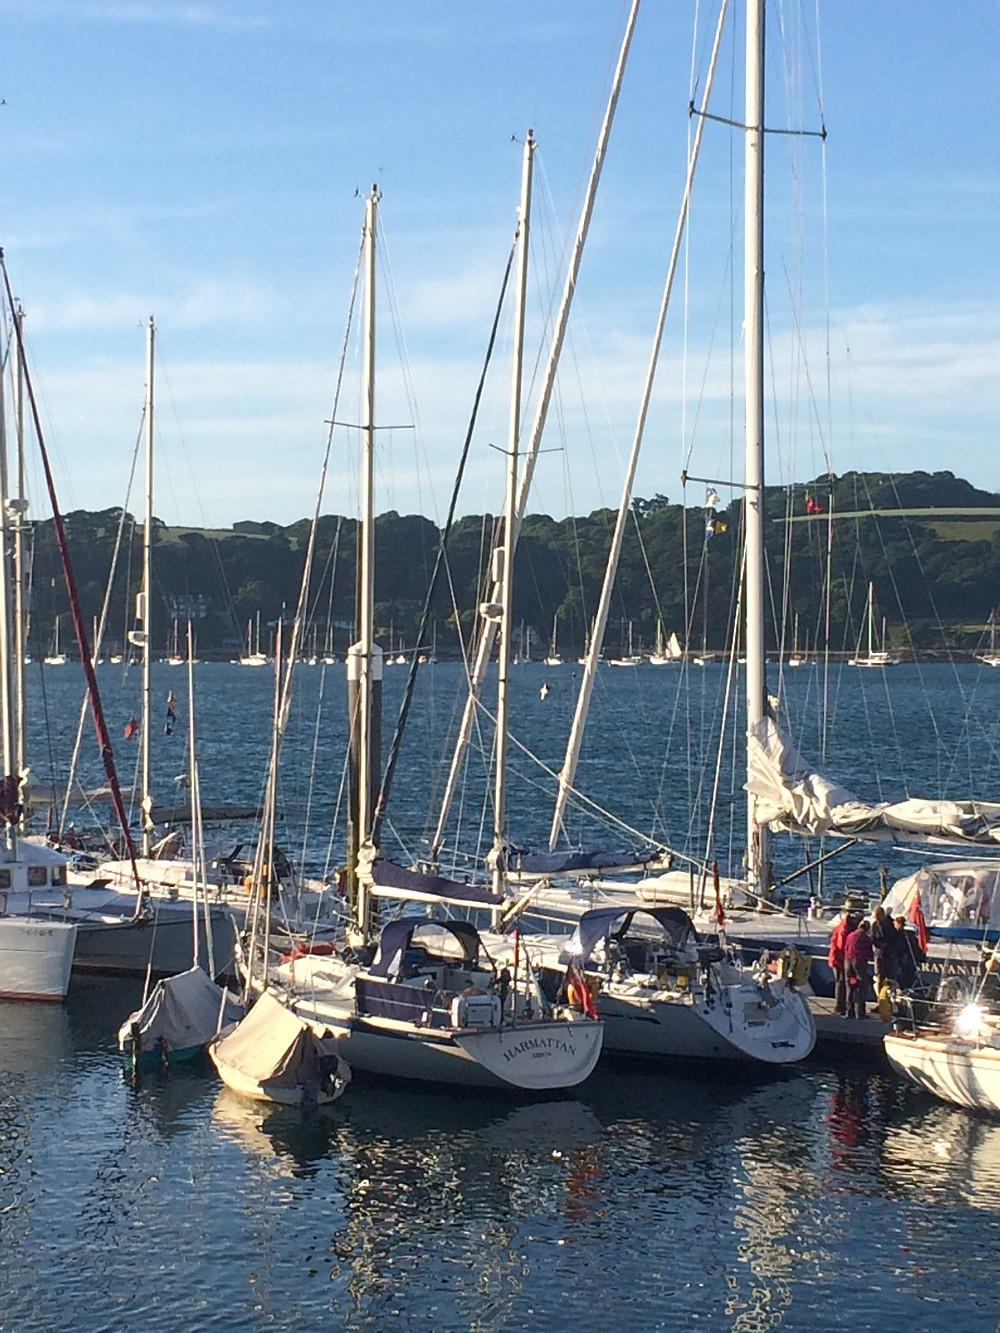 Friends alongside at Port Pendennis Marina. Including two members of the Wayfarer Cruisers.